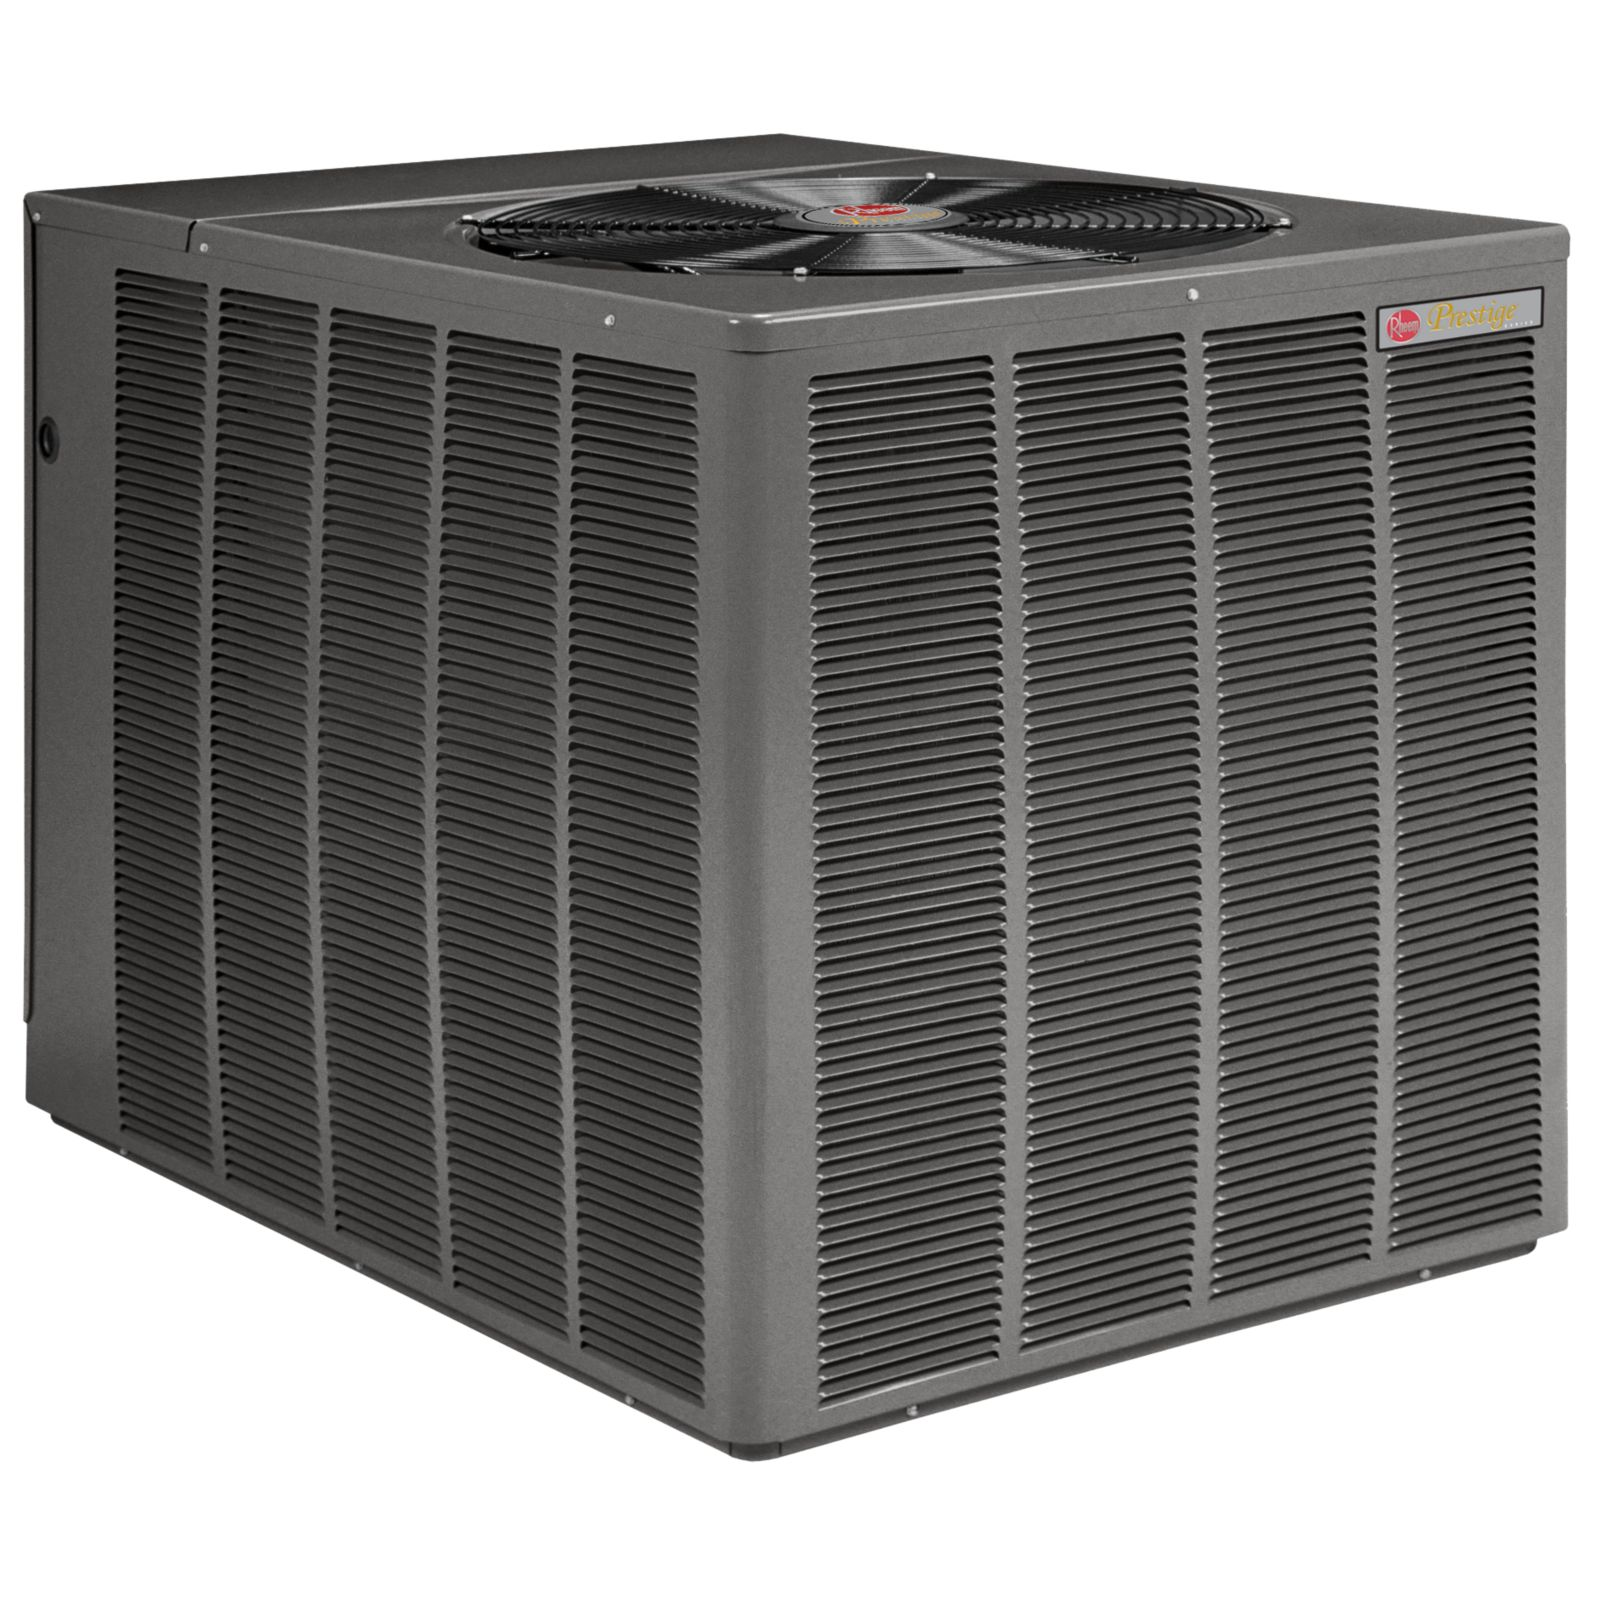 Rheem RARL-025JEC - Prestige Series 2 Ton, 16 SEER, R410A Air Conditioner Condenser , 2-Stage With Comfort Control2